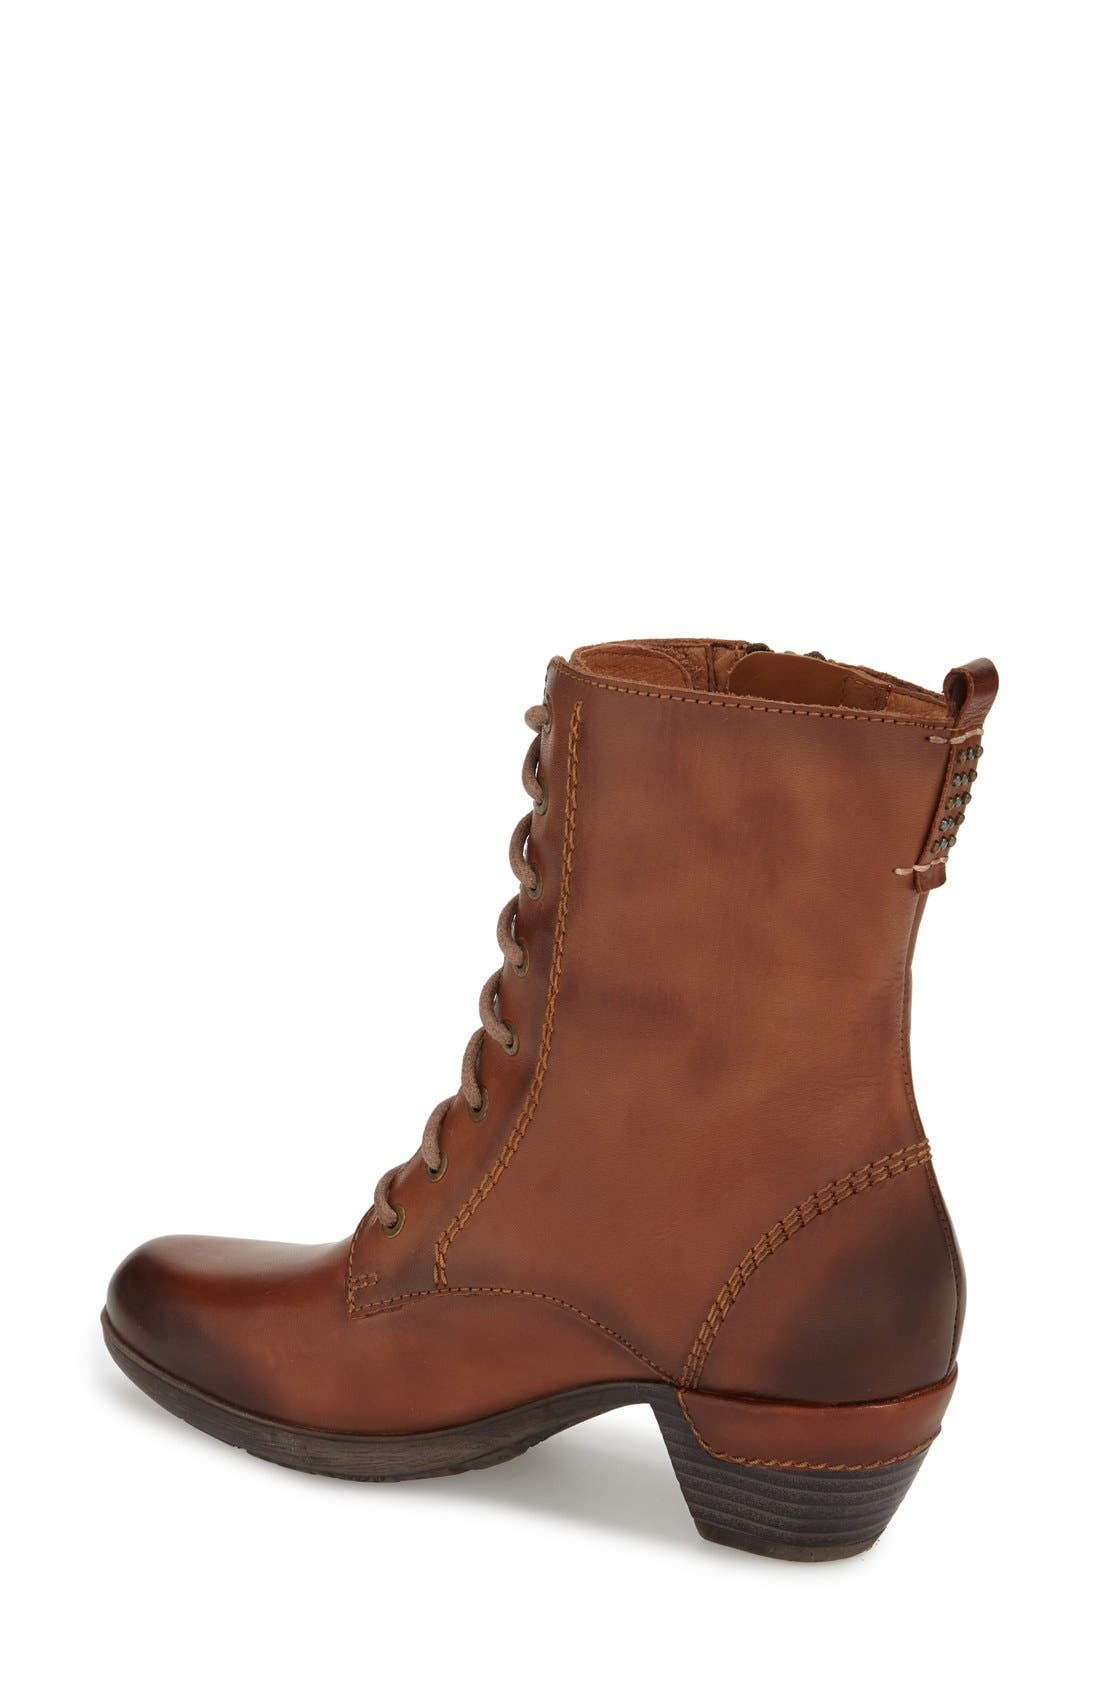 'Rotterdam' Lace-Up Boot,                             Alternate thumbnail 9, color,